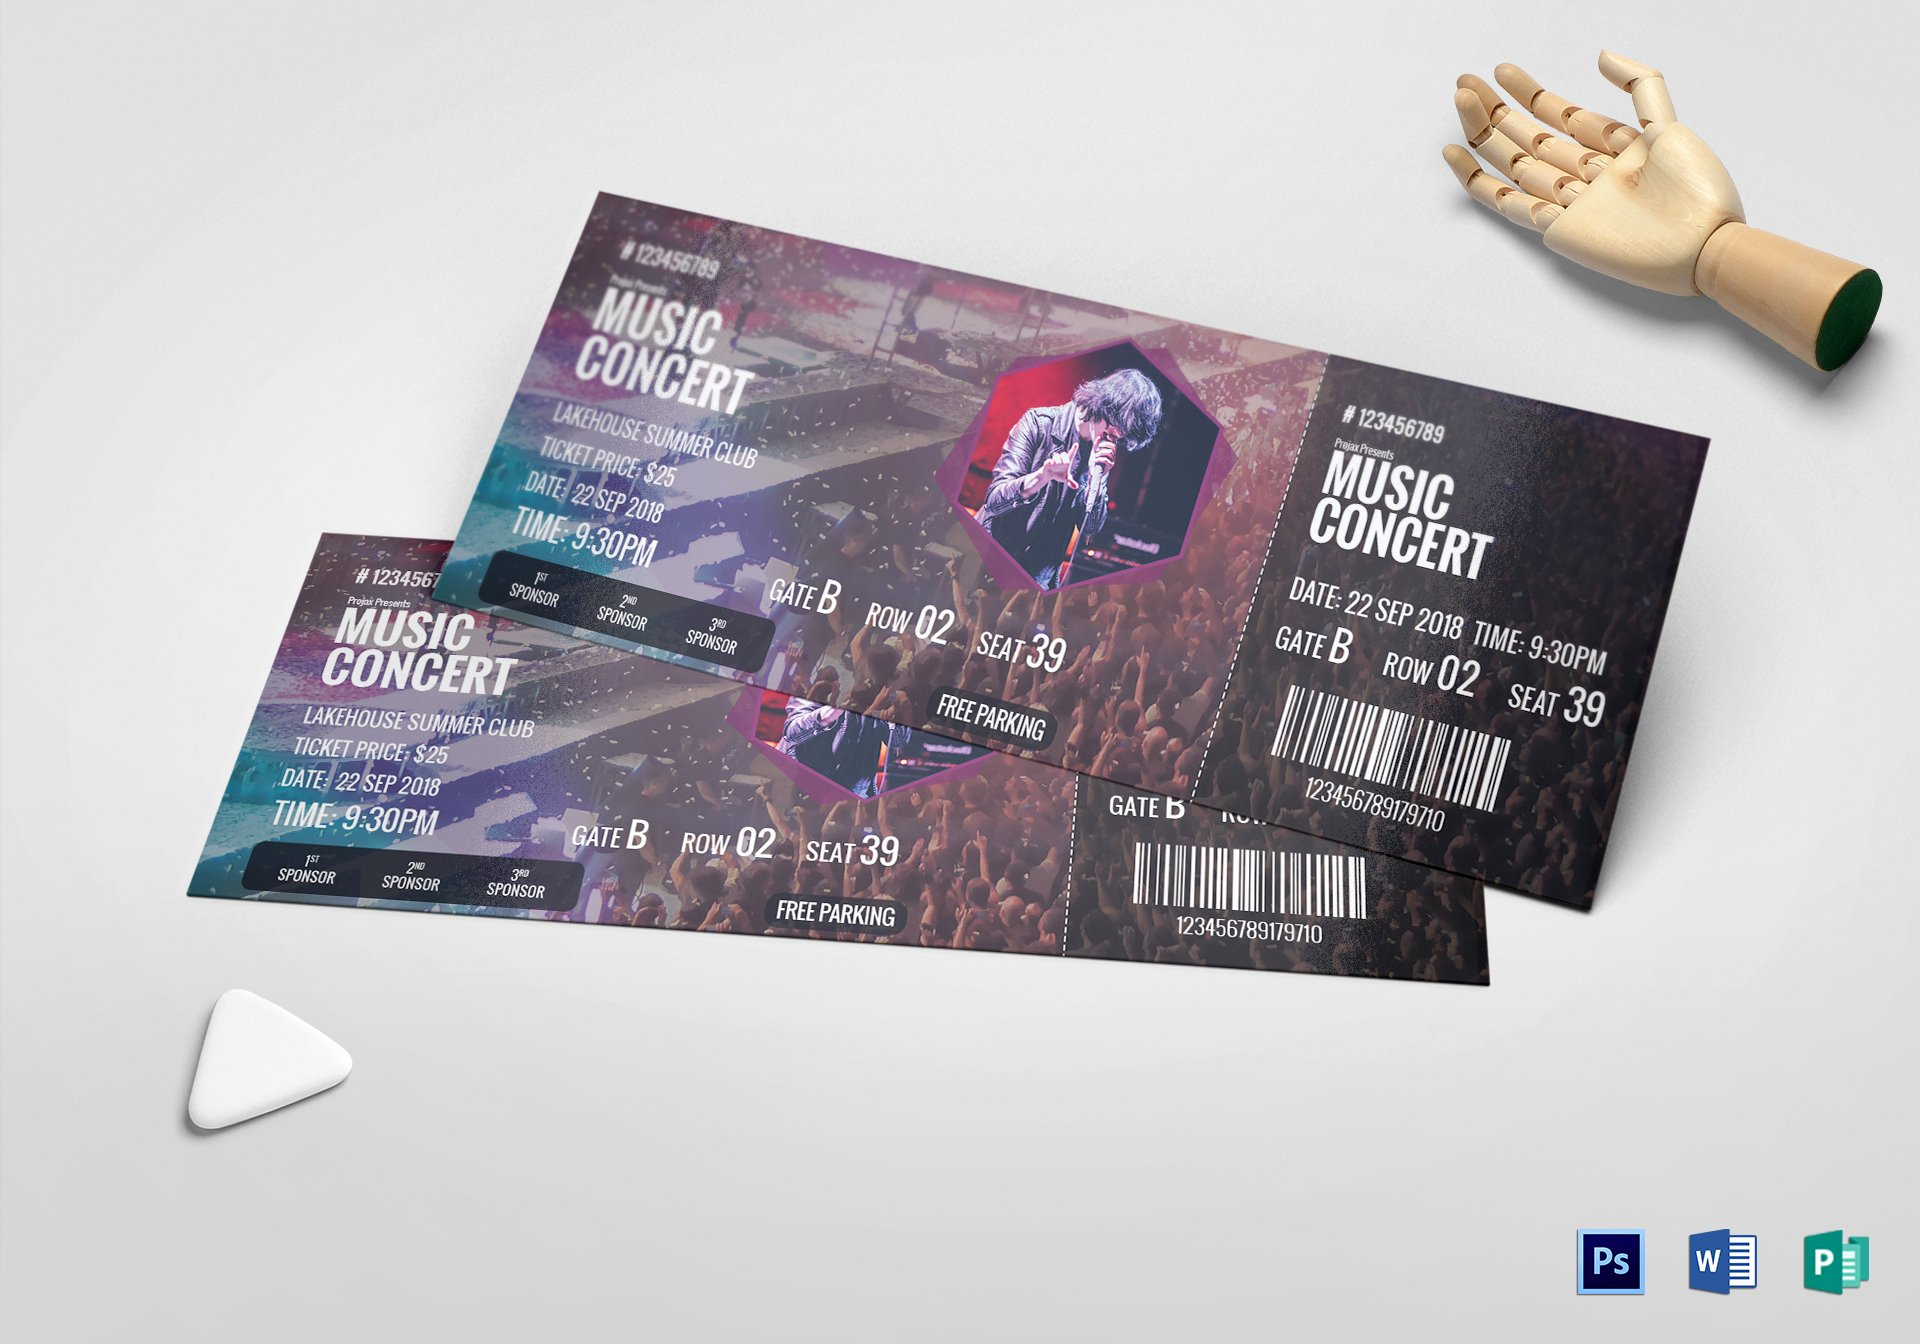 Concert Ticket Template Free Best Of Music Concert Ticket Design Template In Psd Word